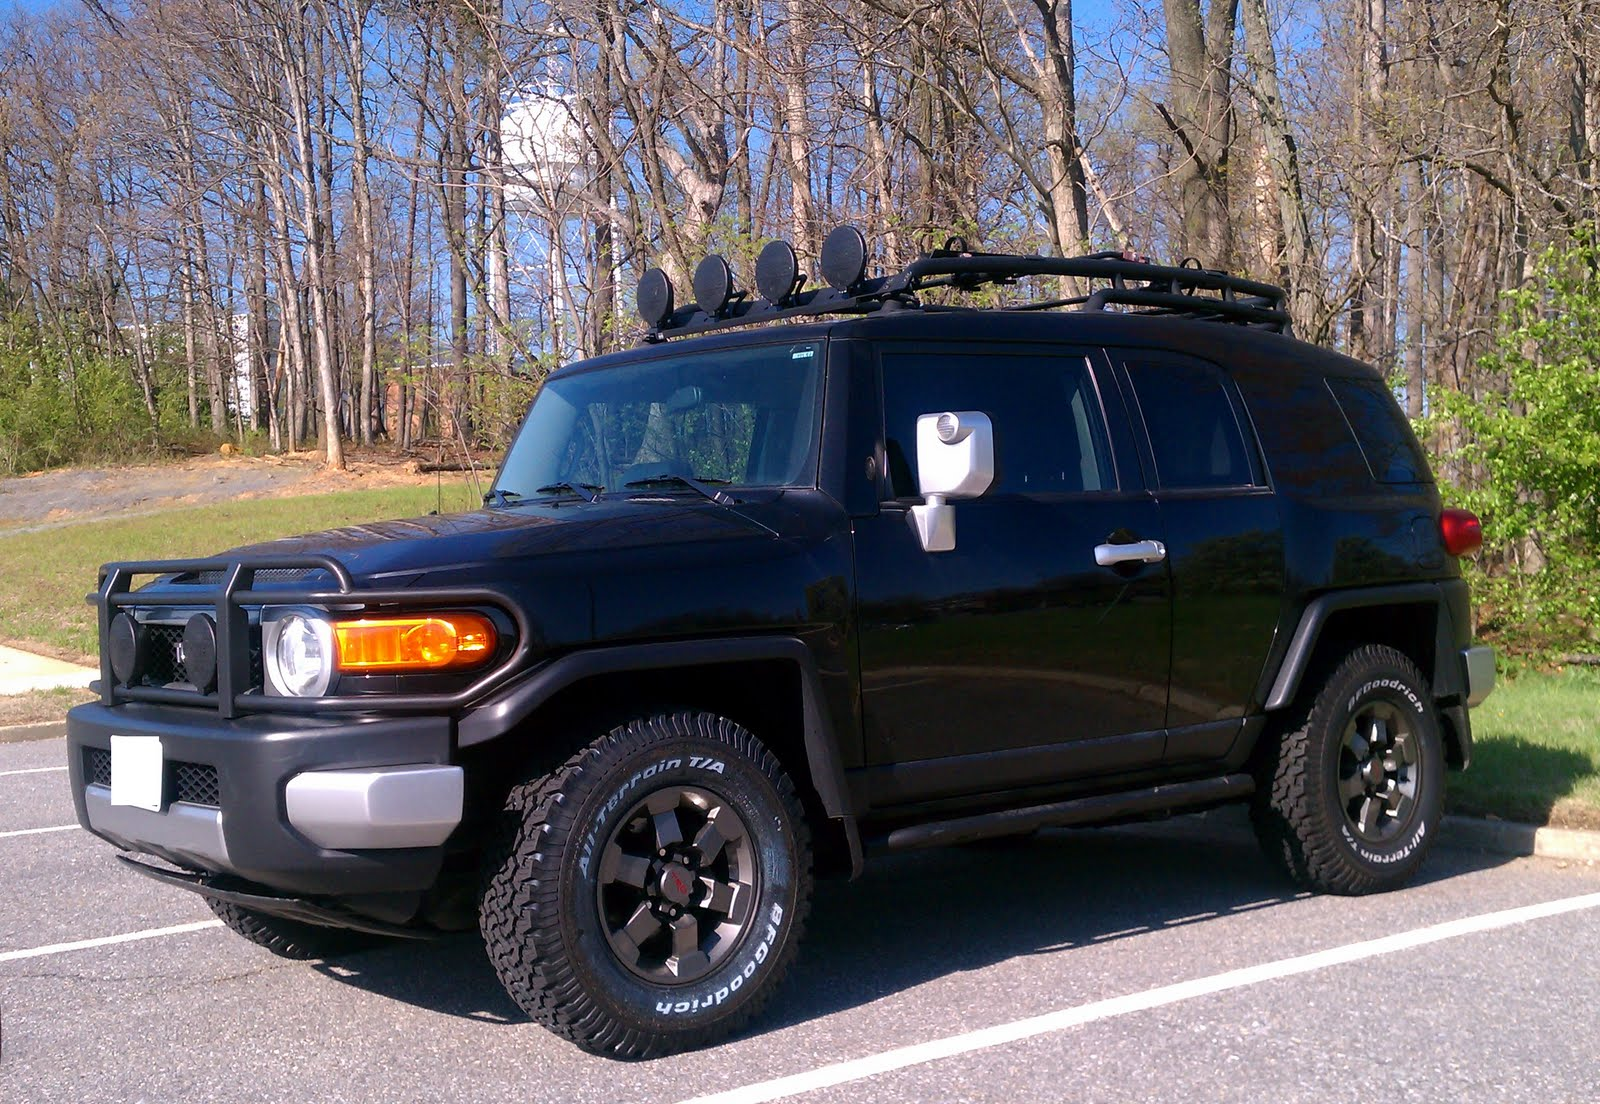 ... the other street tires that were on the FJ when I purchased it. I left  one as a spare and bought a cover for it. The other three are now in  storage.